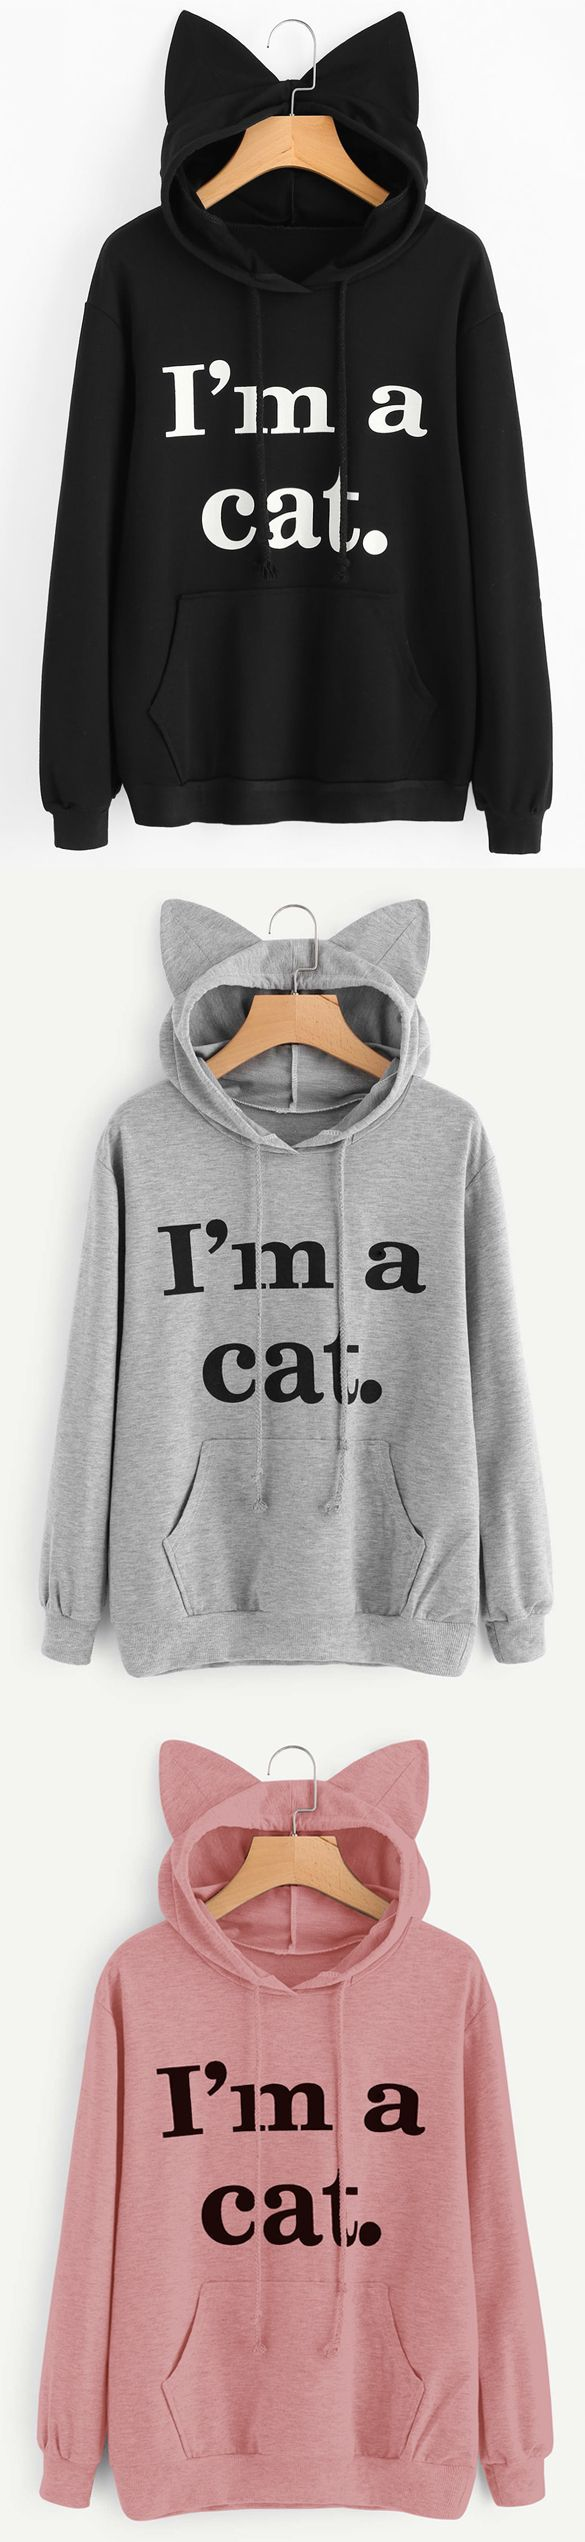 Up to 68% OFF! Front Pocket Letter Graphic Cat Hoodie. Zaful,zaful.com,zaful fashion,tops,womens tops,outerwear,sweatshirts,hoodies,hoodies outfit,hoodies for teens,sweatshirts outfit,long sleeve tops,sweatshirts for teens,winter outfits,fall outfits,tops,sweatshirts for women,women's hoodies,womens sweatshirts,cute sweatshirts,floral hoodie,crop hoodies,oversized sweatshirt, halloween costumes,halloween,halloween outfits,halloween tops,halloween costume ideas. @zaful Extra 10% OFF…